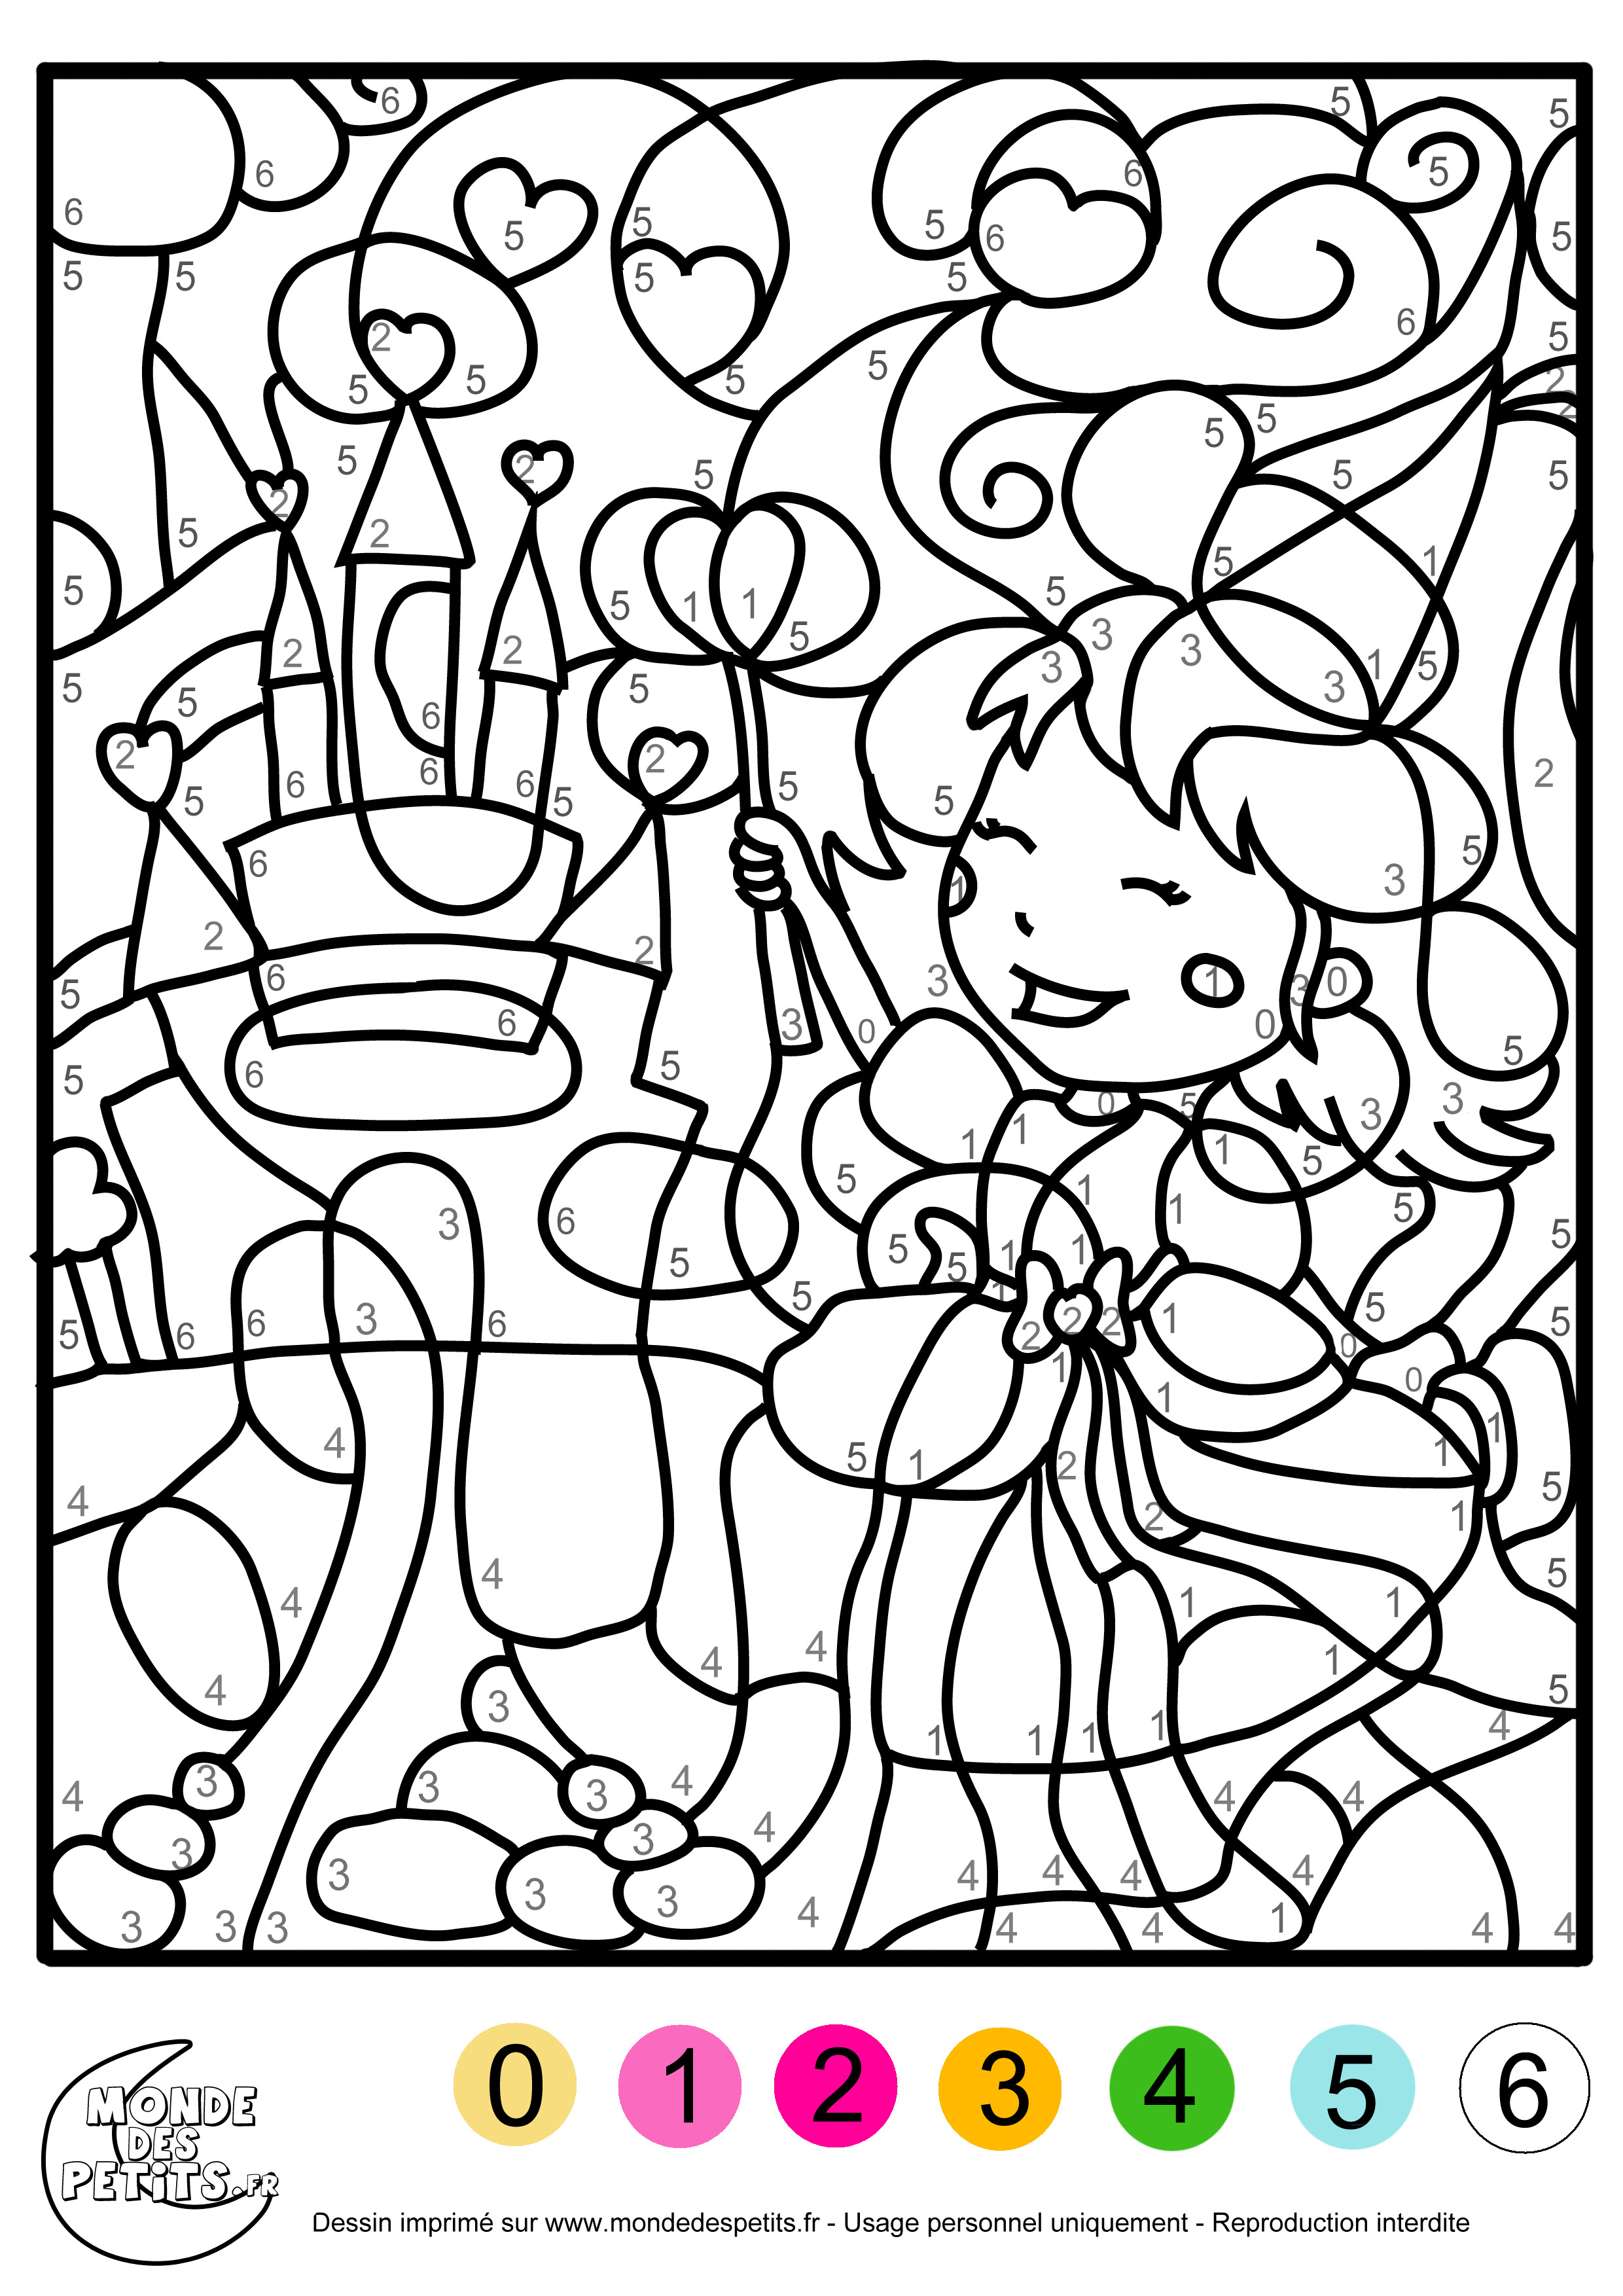 coloriages id=25